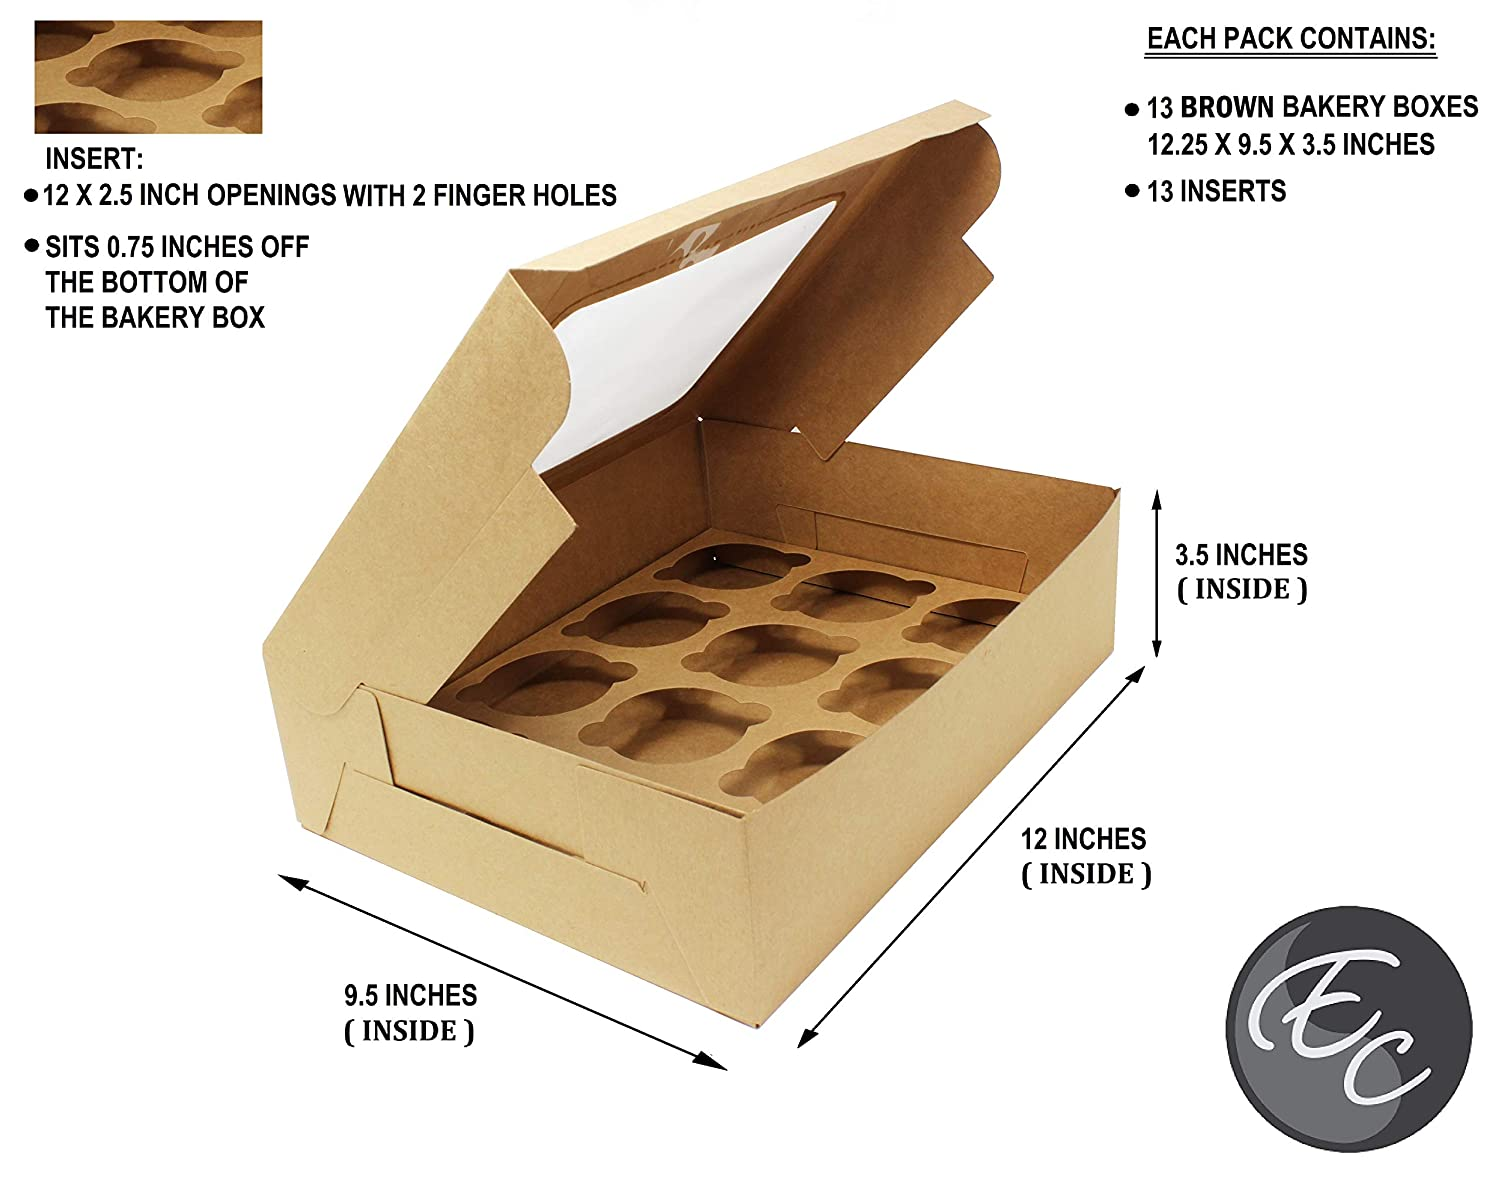 Muffins Take Out Box Containers Premium Pale Blue Bakery Boxes with Windows and Inserts for 12 Cupcakes Baked Goods Pastries Ideal for Bakers 12.25 x 9.5 x 3.5 Inches Set of 13 Cardboard Boxes